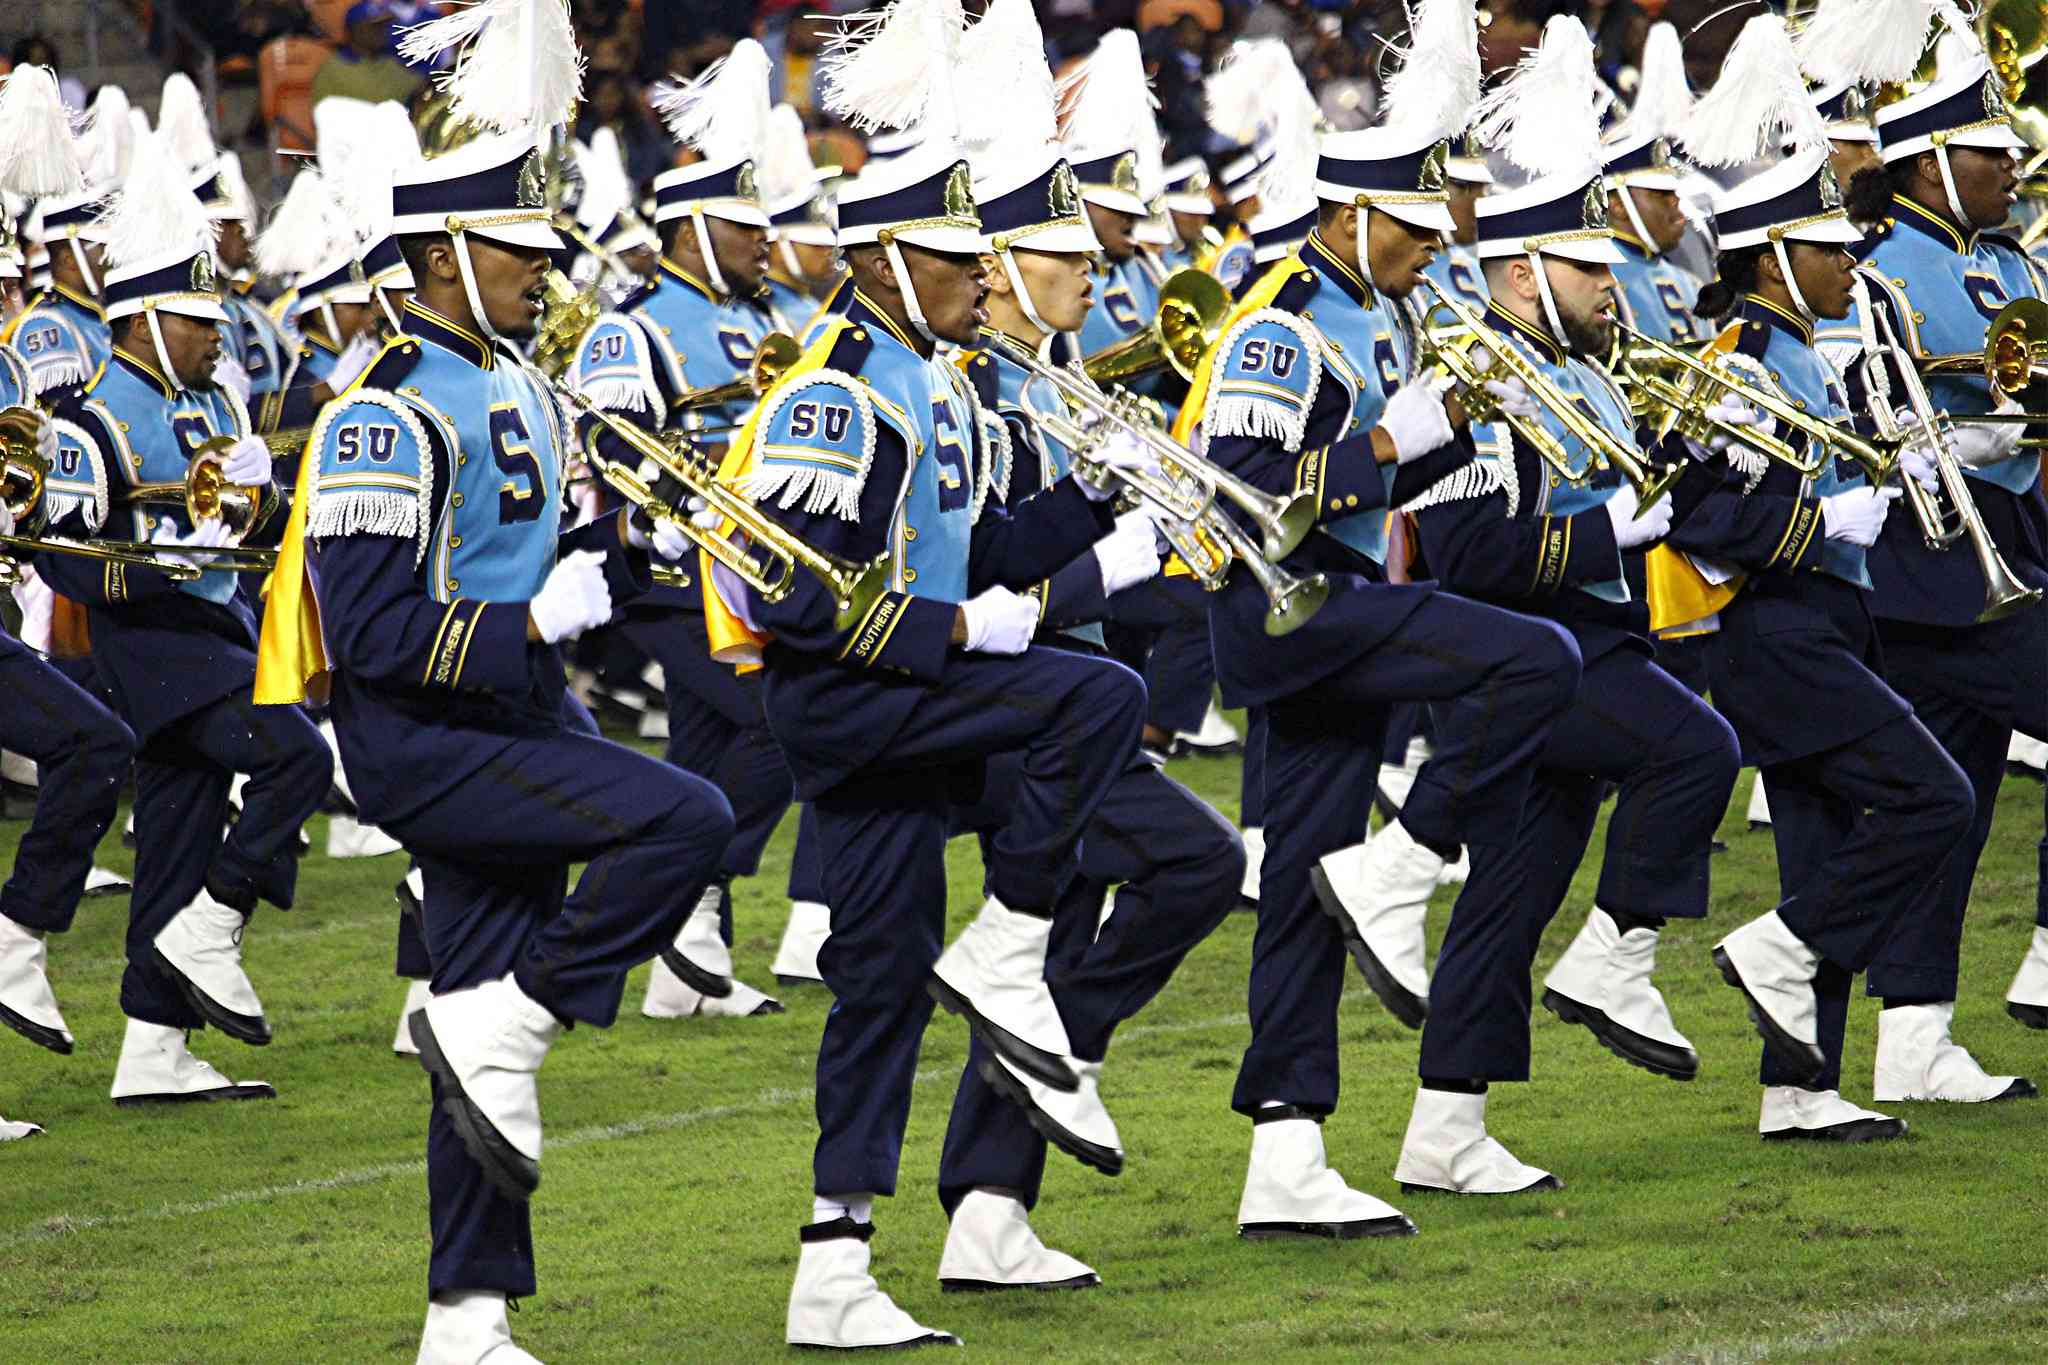 The Top 11 College Marching Band Programs